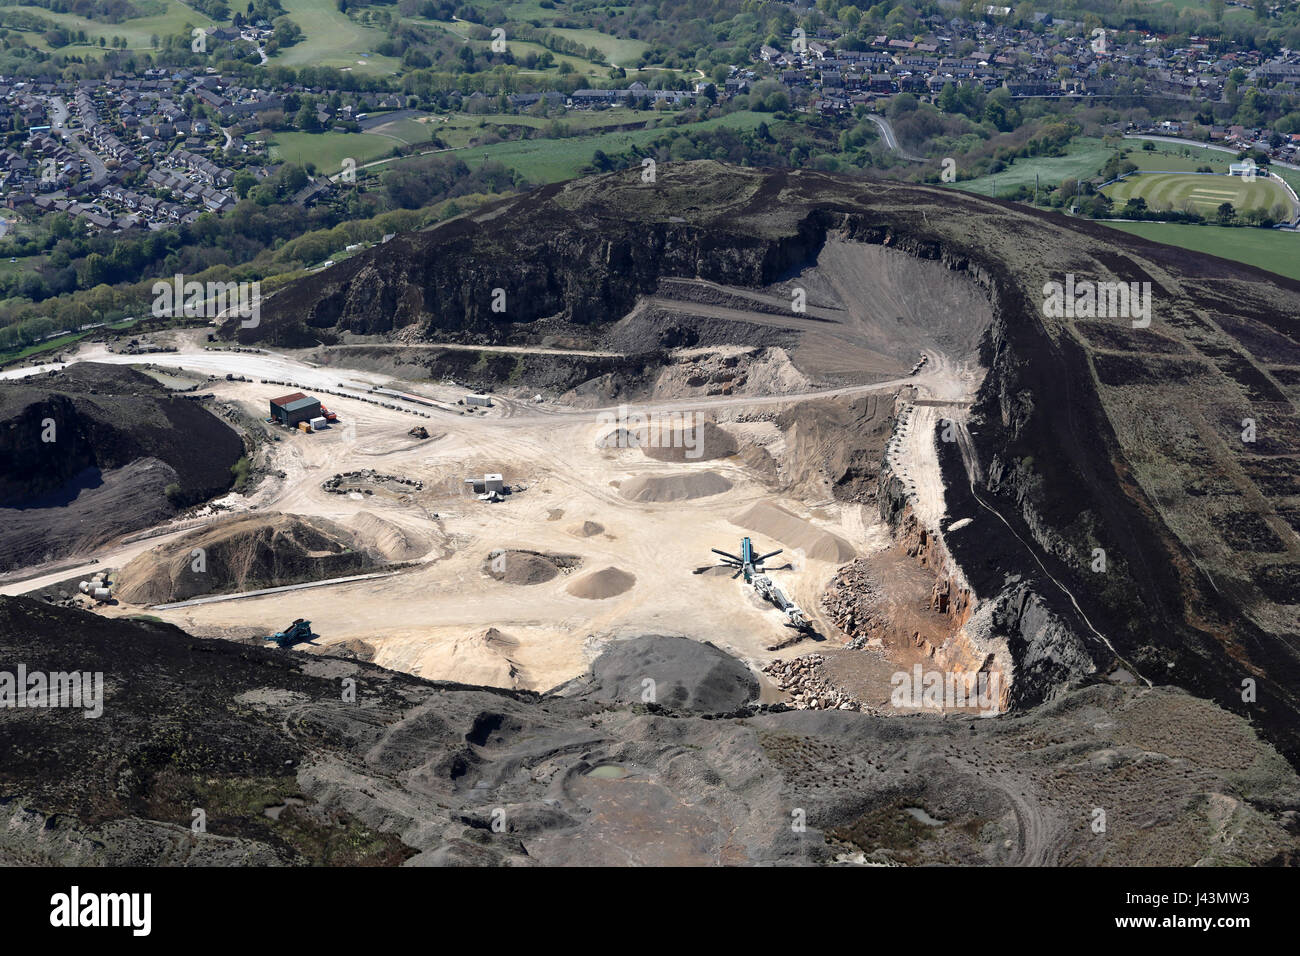 aerial view of a quarry in the Pennines, UK - Stock Image